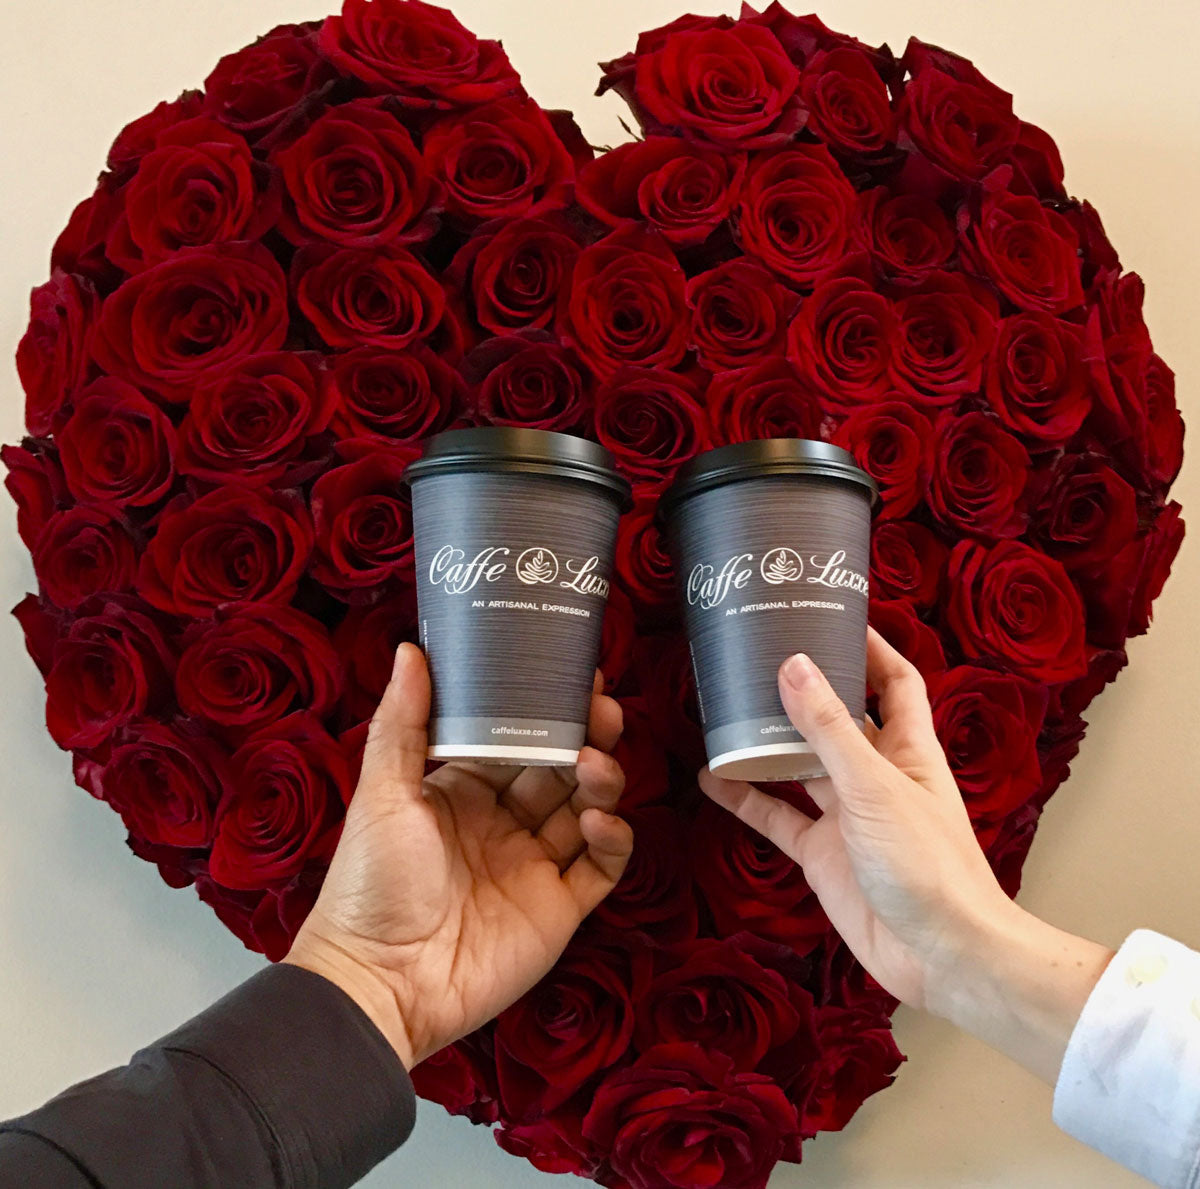 caffe luxxe coffee cups in front of heart rose bouquet